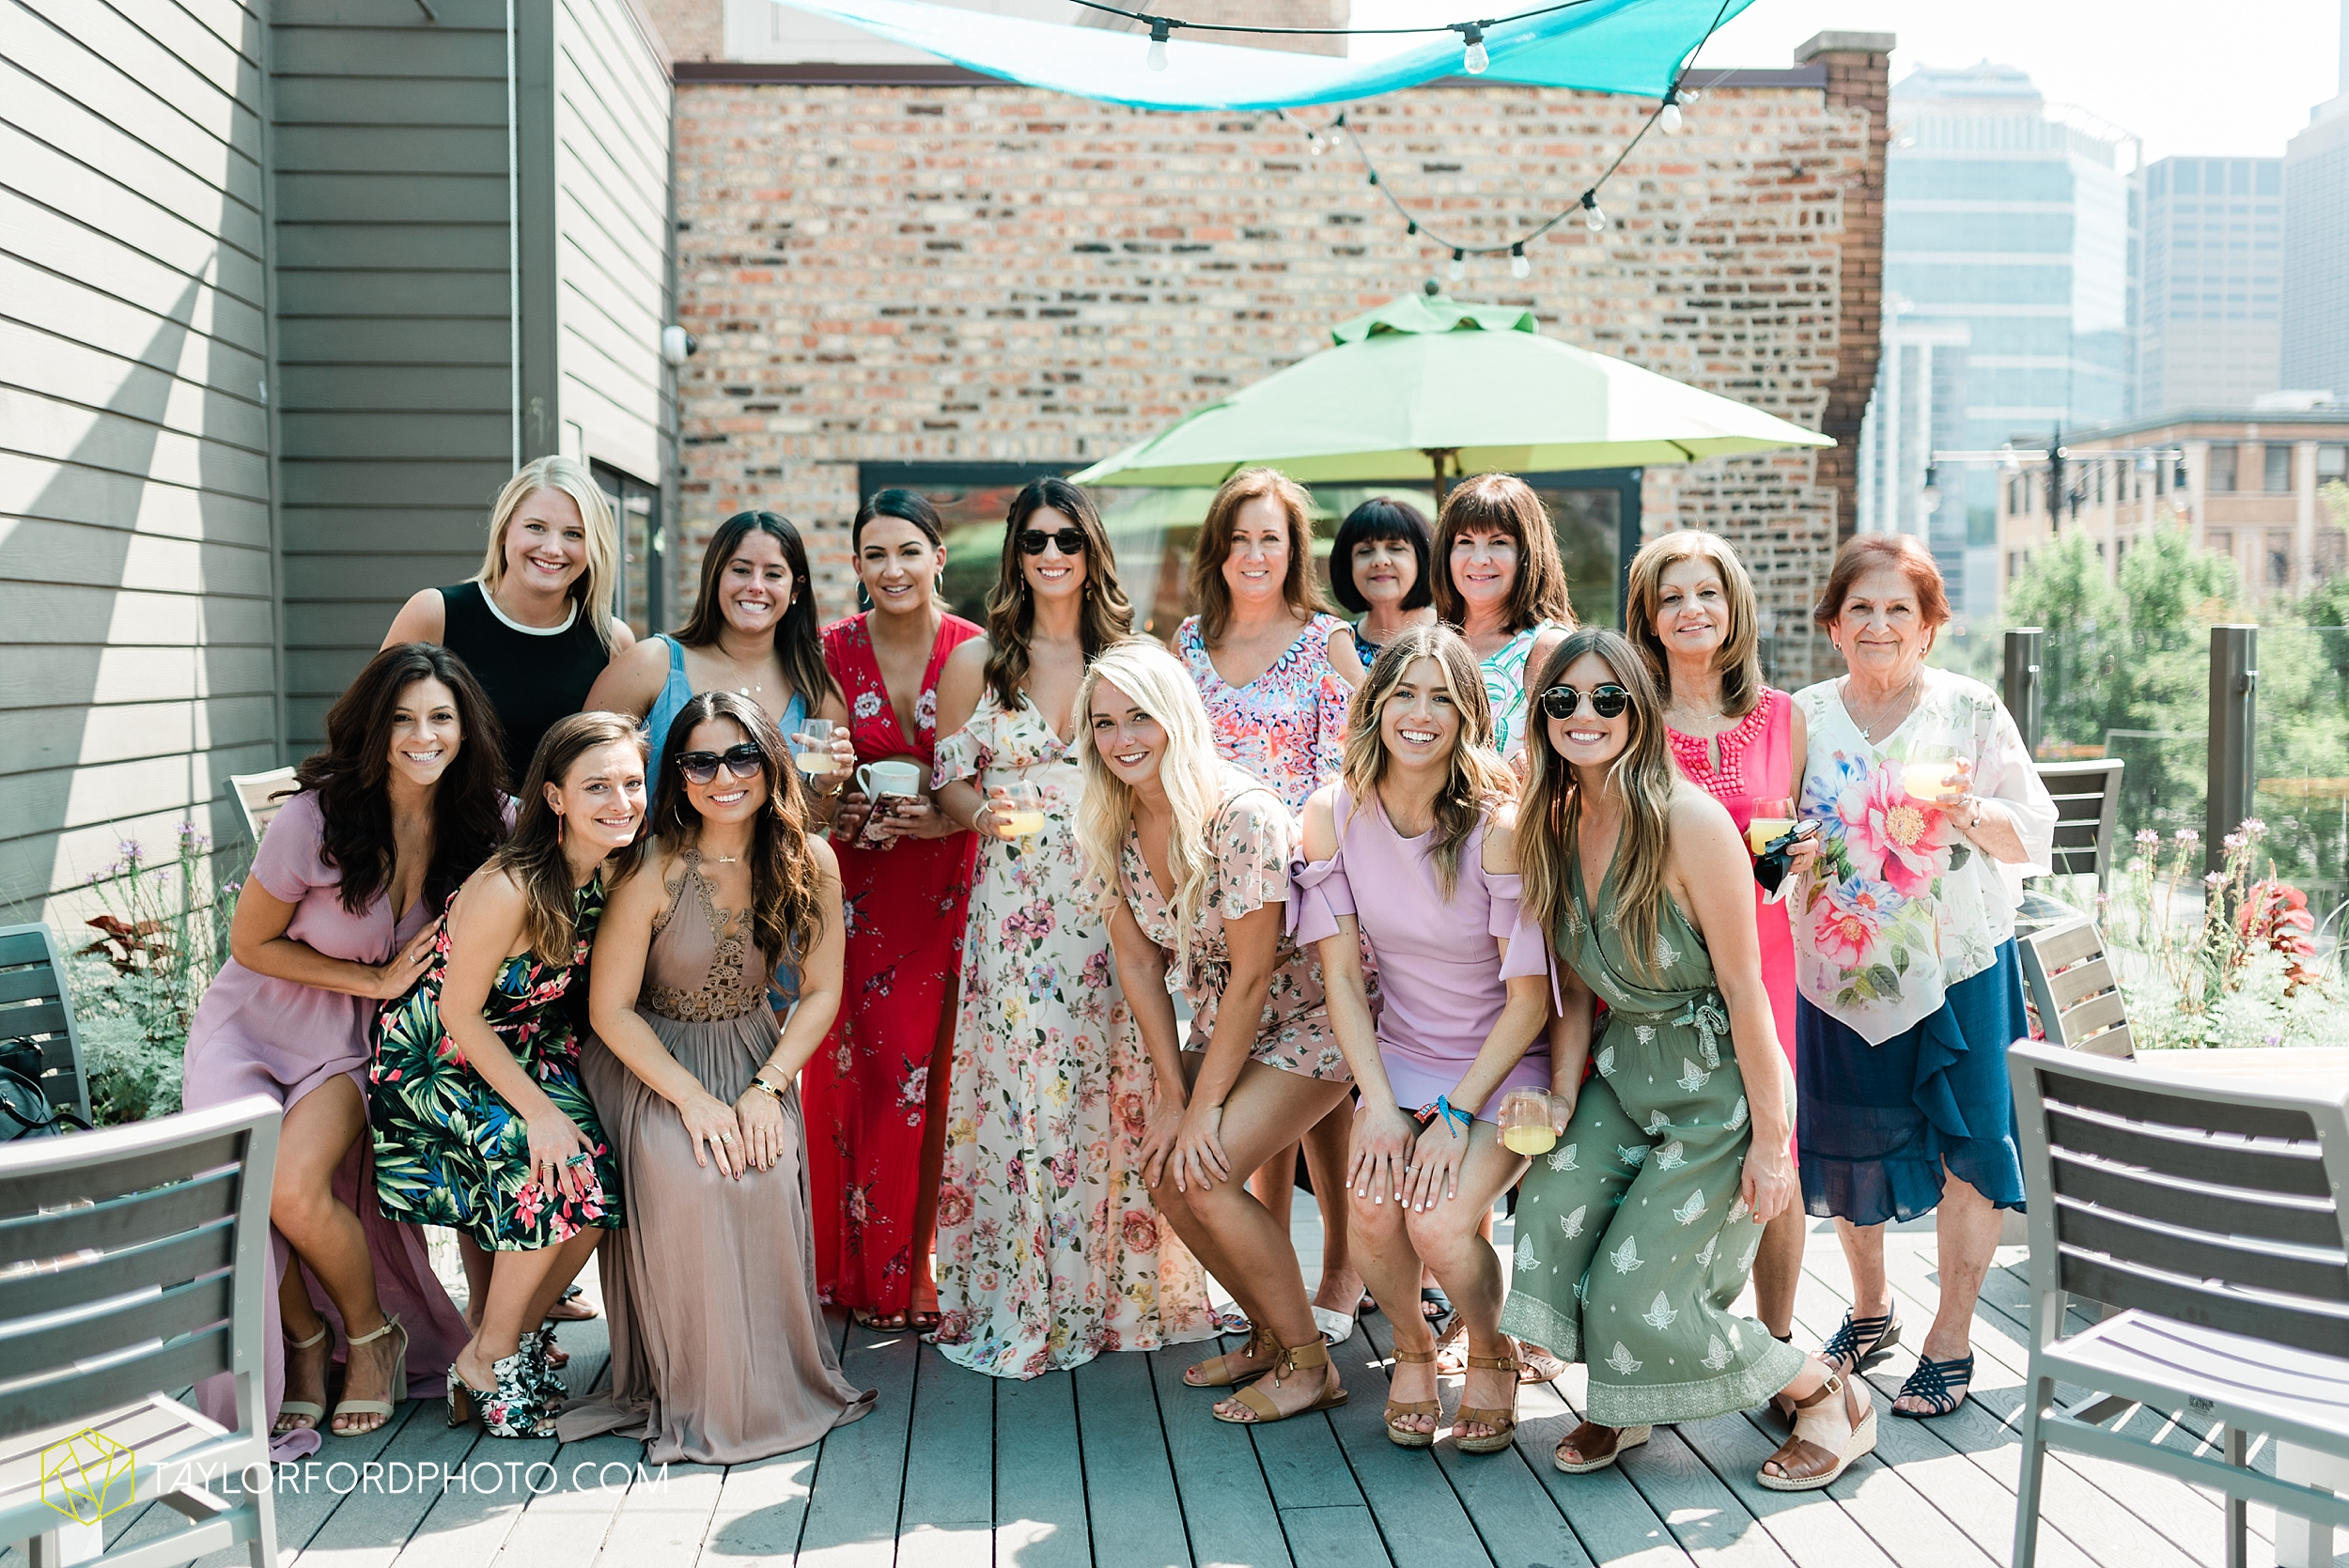 chicago-illinois-bridal-shower-little-goat-diner-west-loop-wedding-photographer-taylor-ford-photographer_8814.jpg